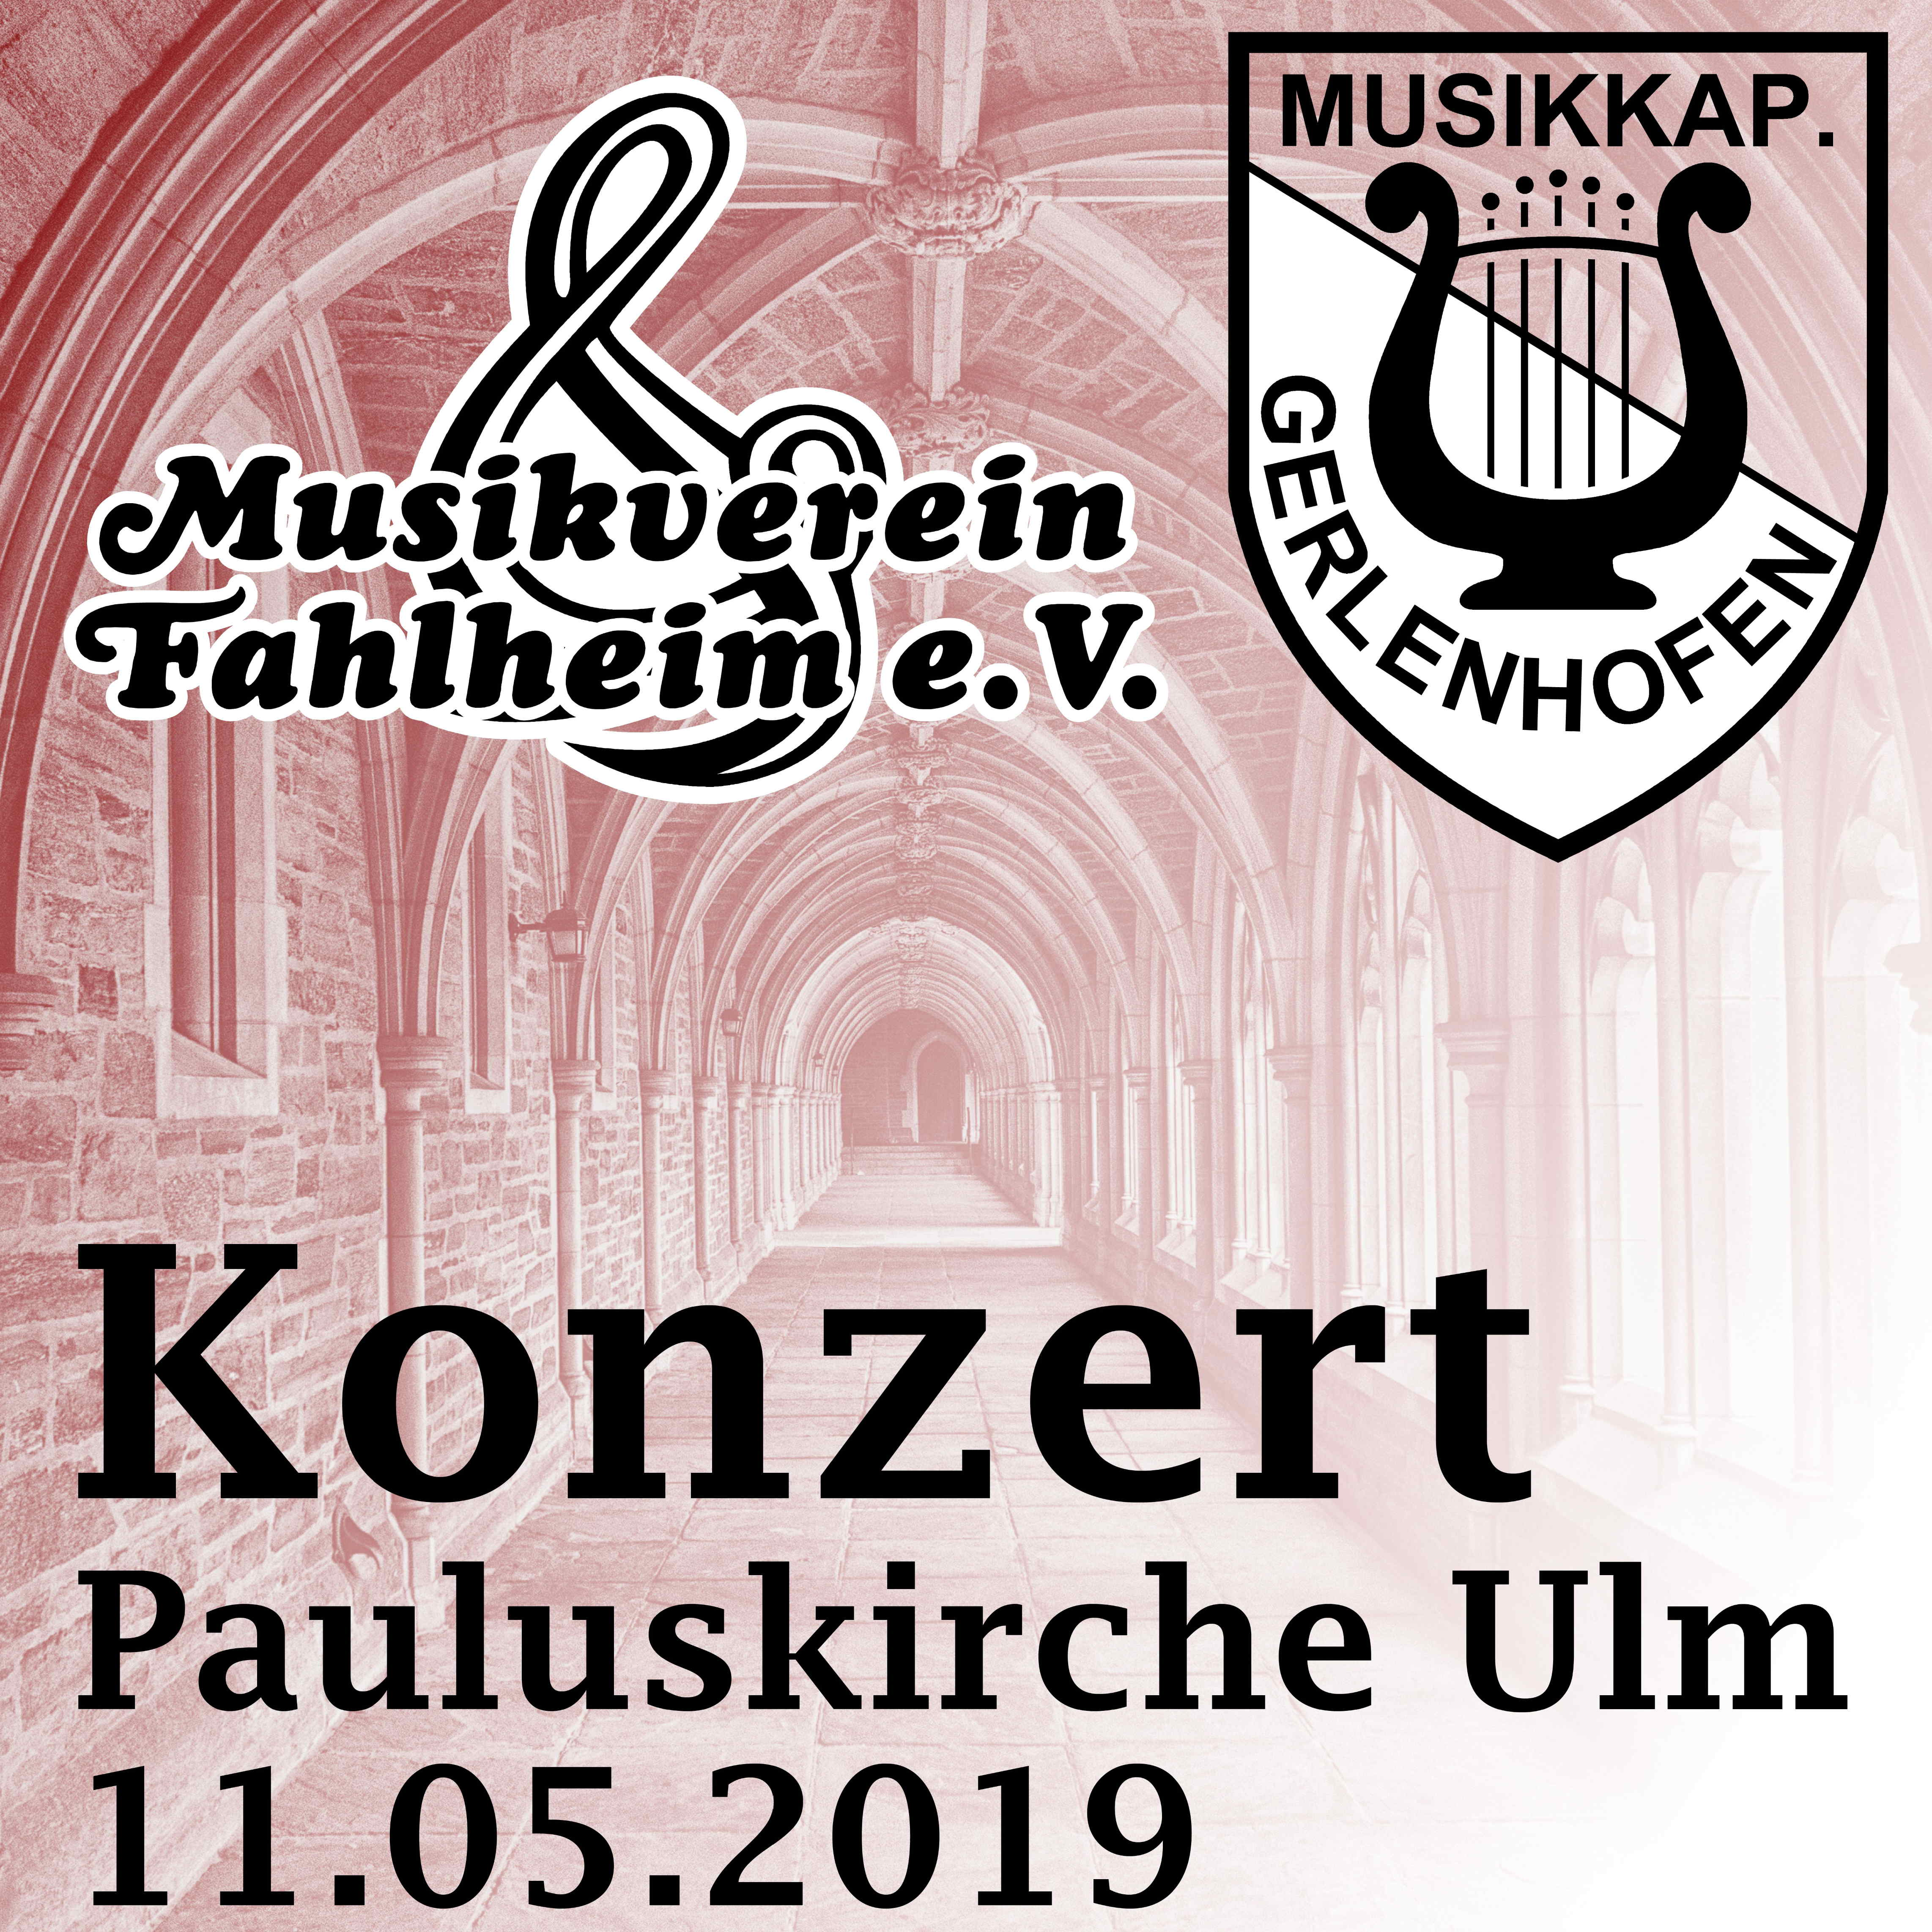 Pauluskirchenkonzert in Ulm 2019